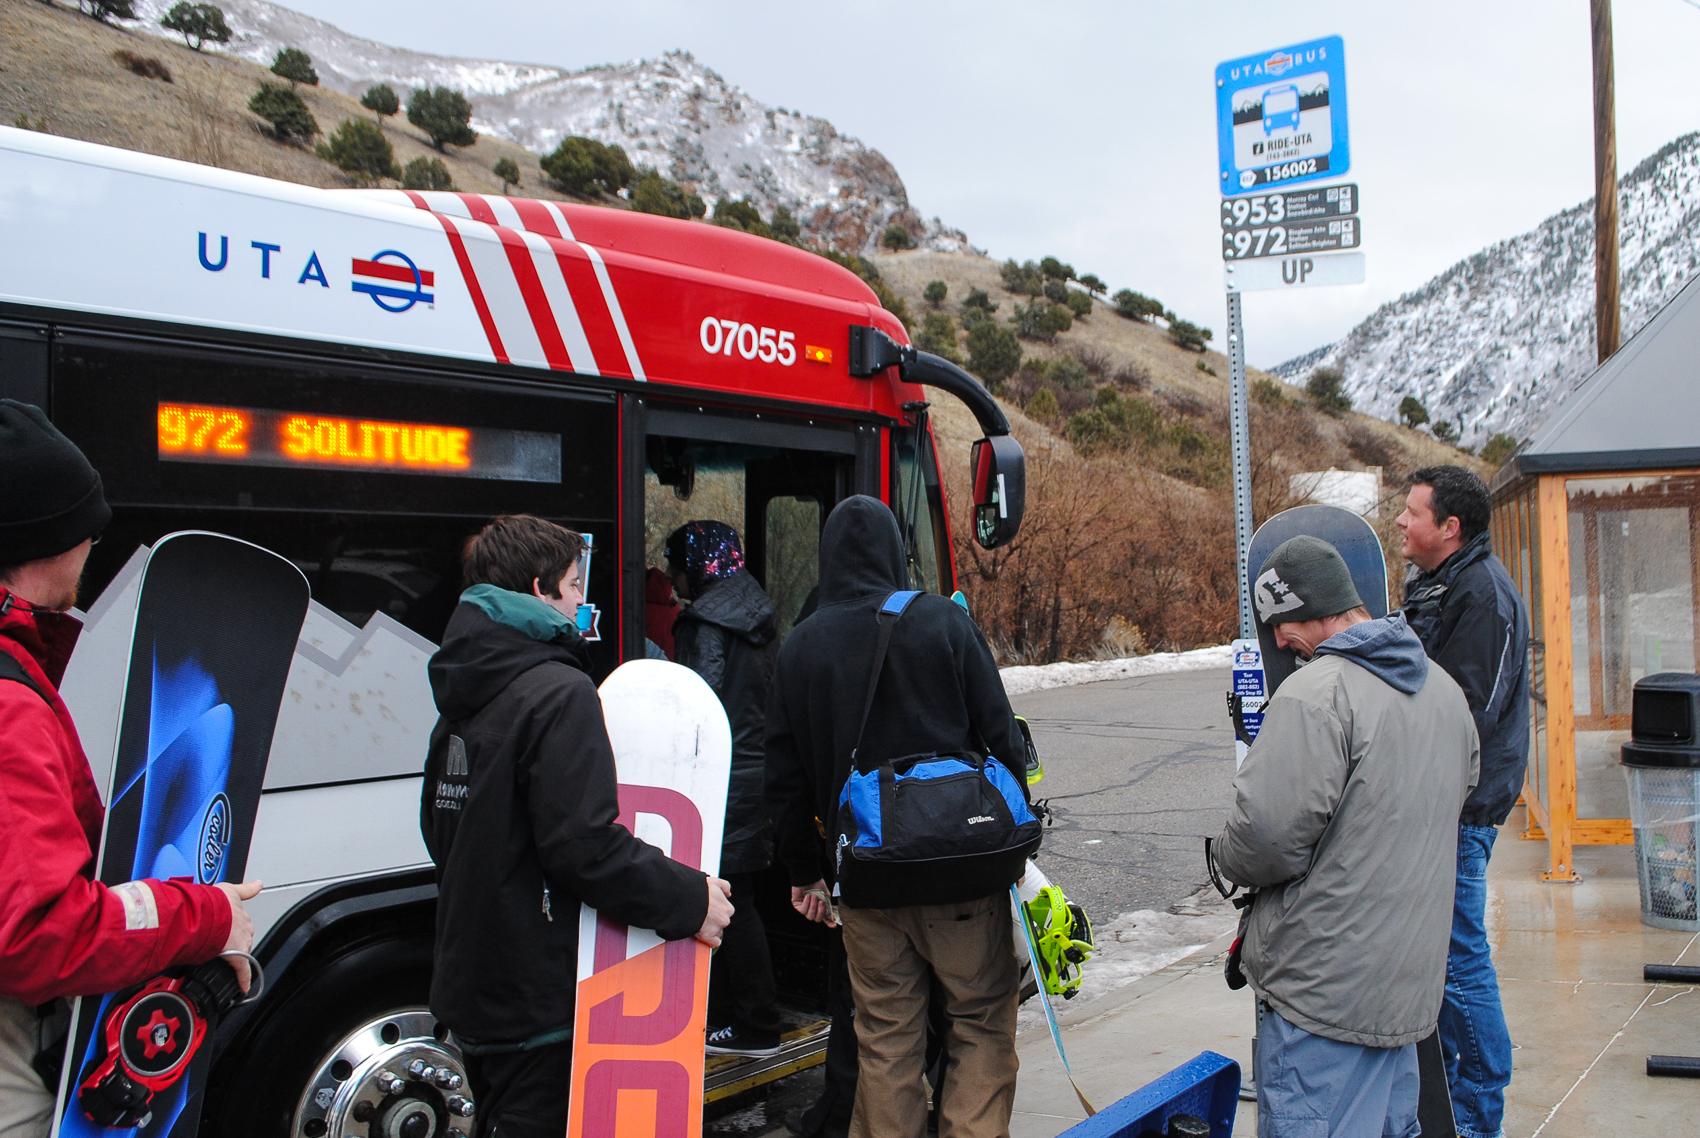 Let UTA be Your Ride to the Slopes